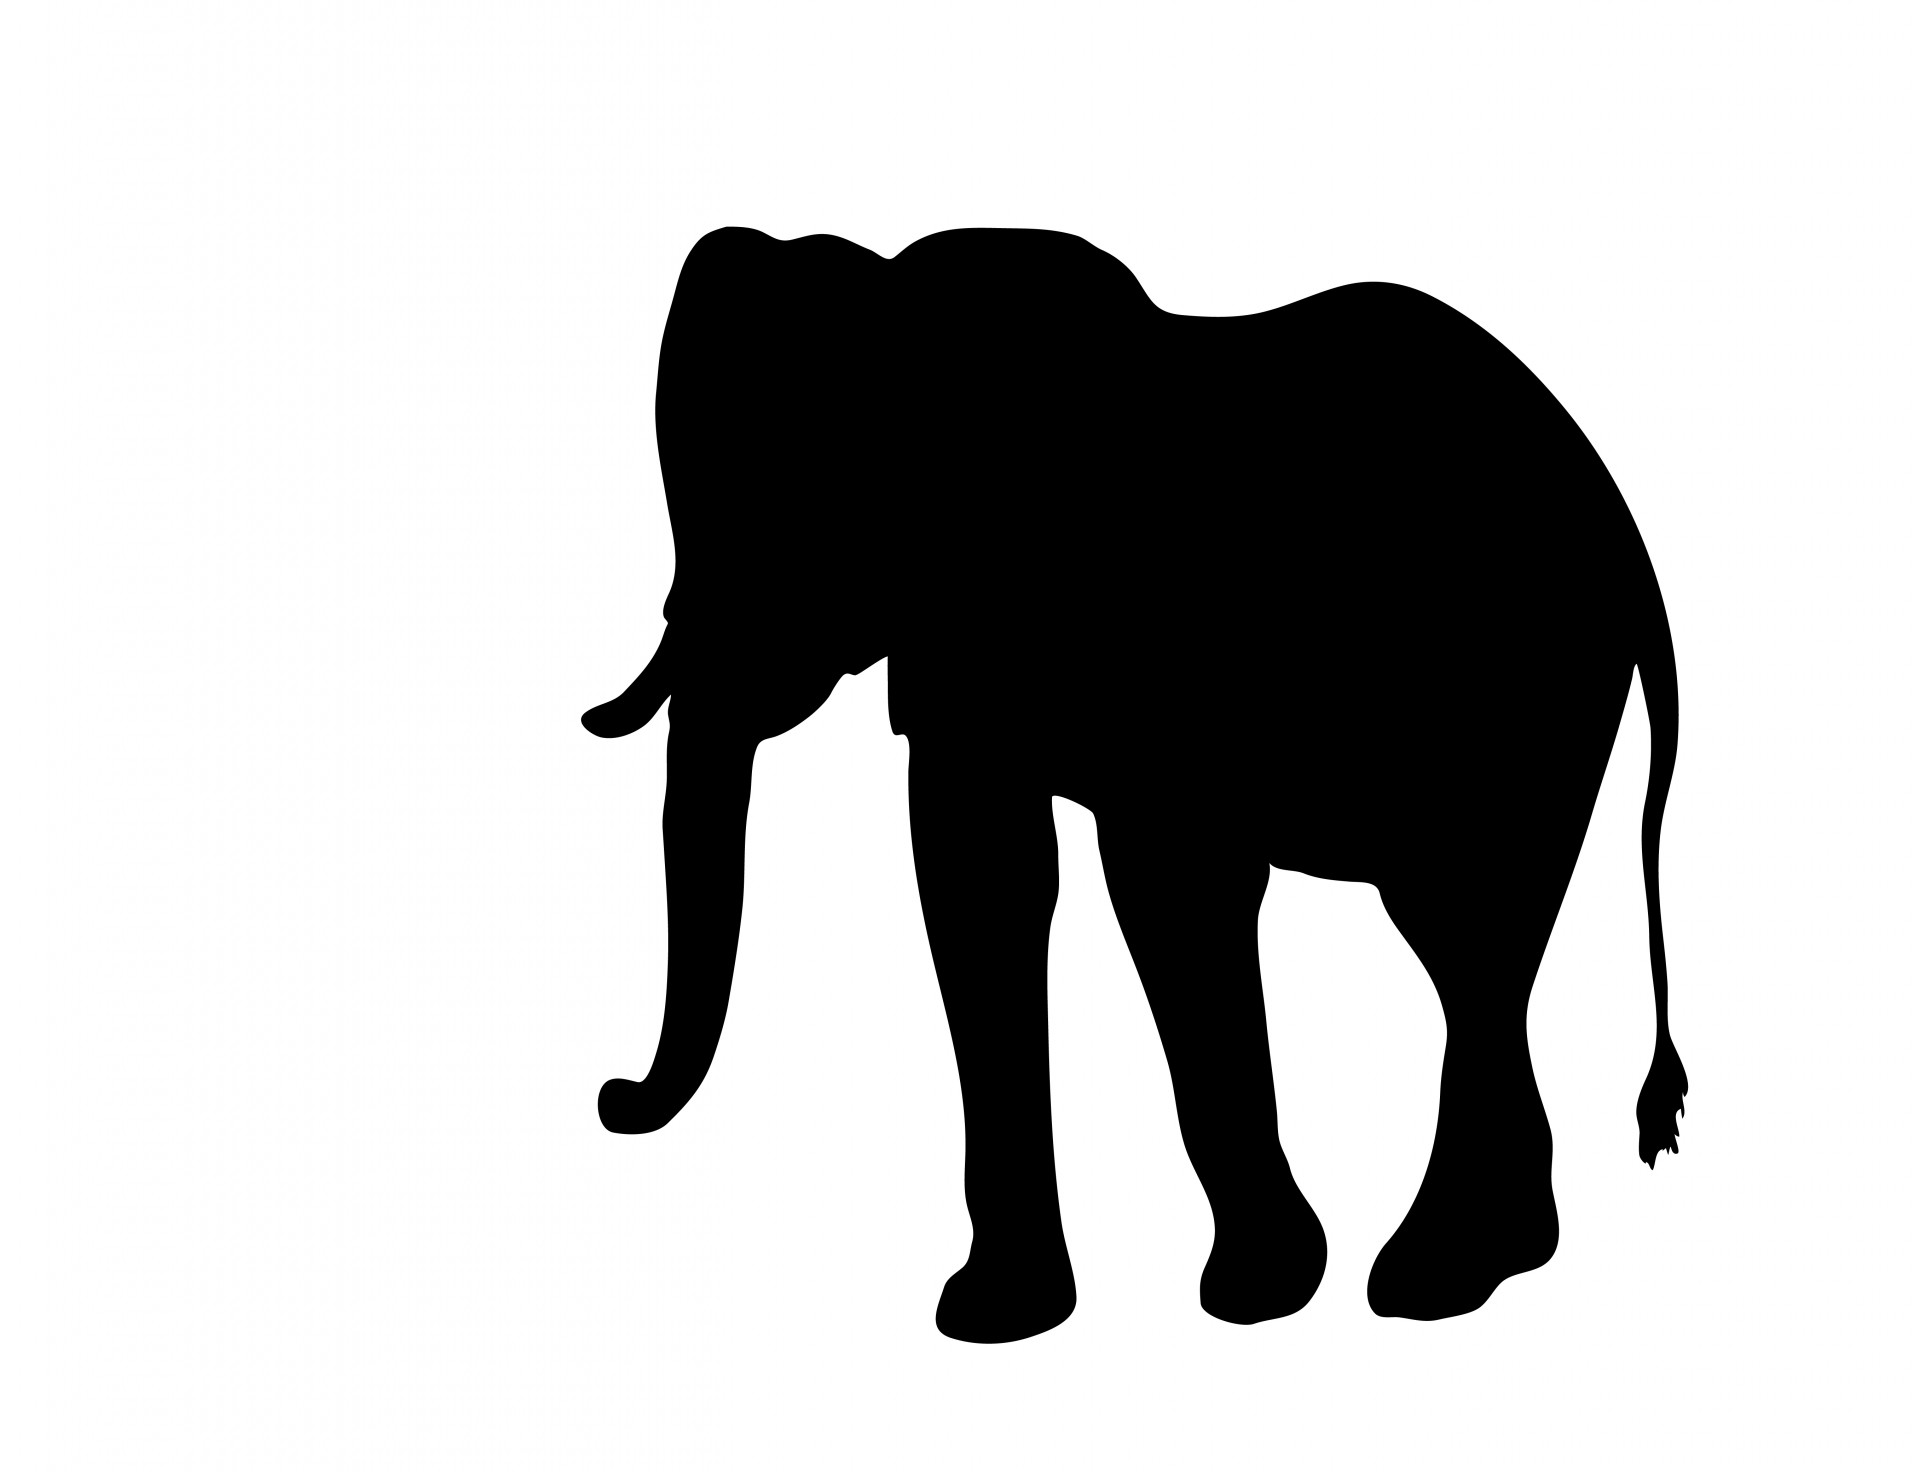 Big clipart african elephant. Silhouette free stock photo